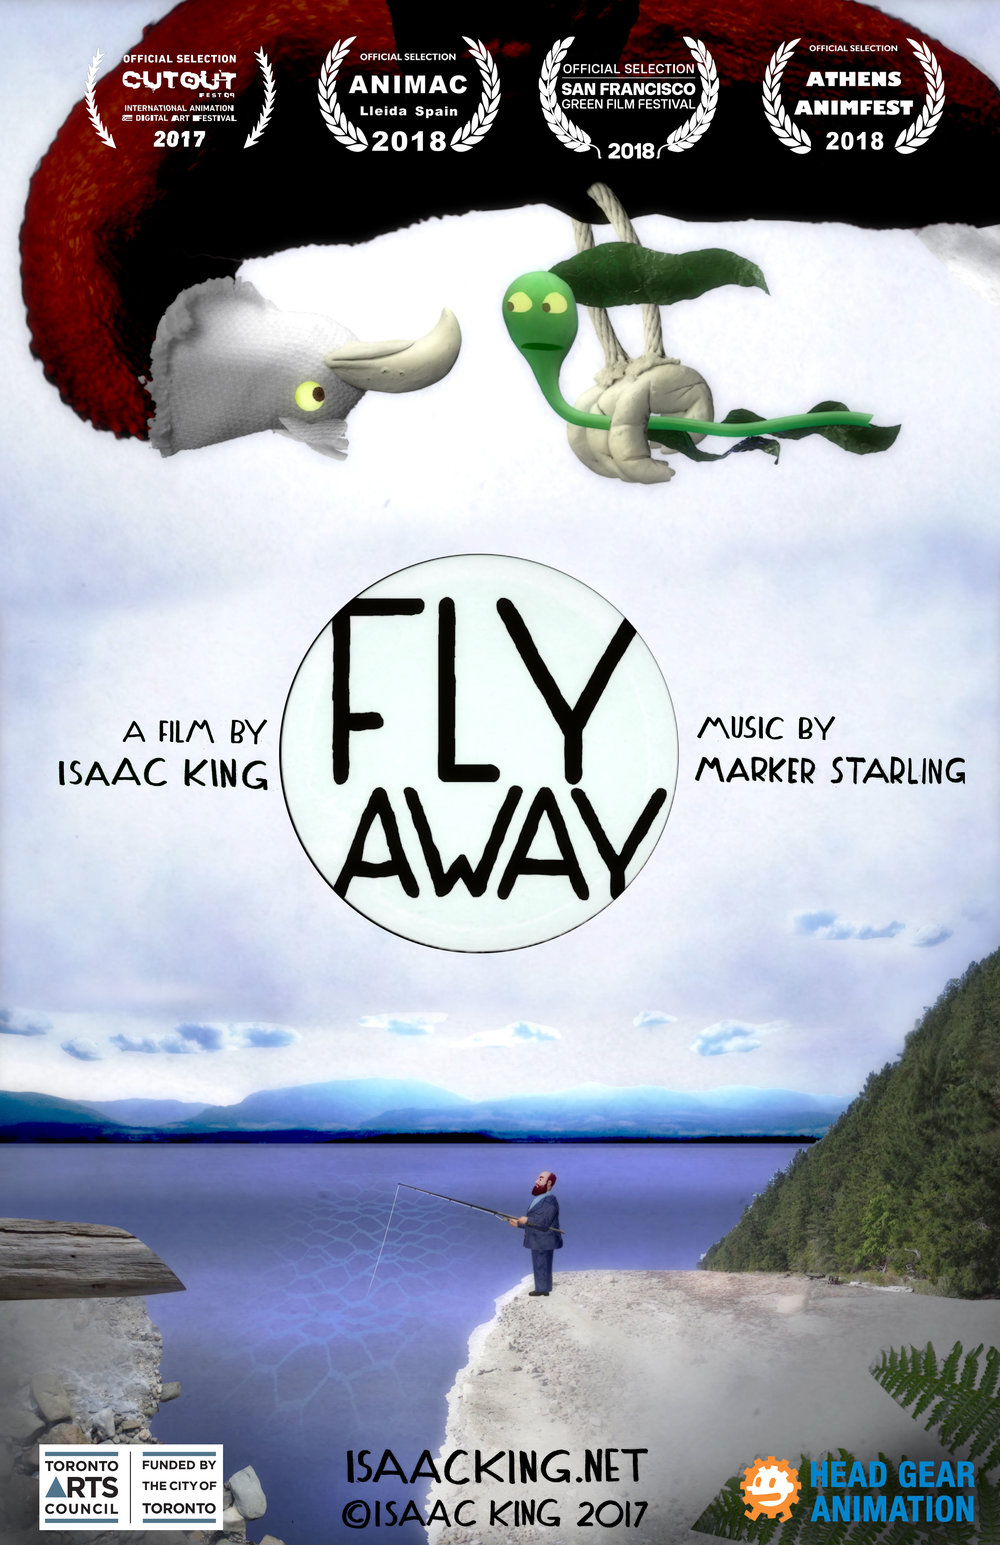 - FLY AWAY is a my latest 4-minute animated film, featuring stop-motion/collage animation and new music by Marker Starling.Anchored to the ocean floor, a lonely sea kelp yearns to fly. His dream is realized, in this crisp story about the risks of change.Screening history:CutoutFest 2017, Queretaro MexicoAnimac 2018, Lleida SpainAnimfest 2018, Athens GreeceSan Francisco Green Film Festival 2018, USAPlanet In Focus Film Festival 2018, Toronto CanadaCinemare 2018, Kiel Germany